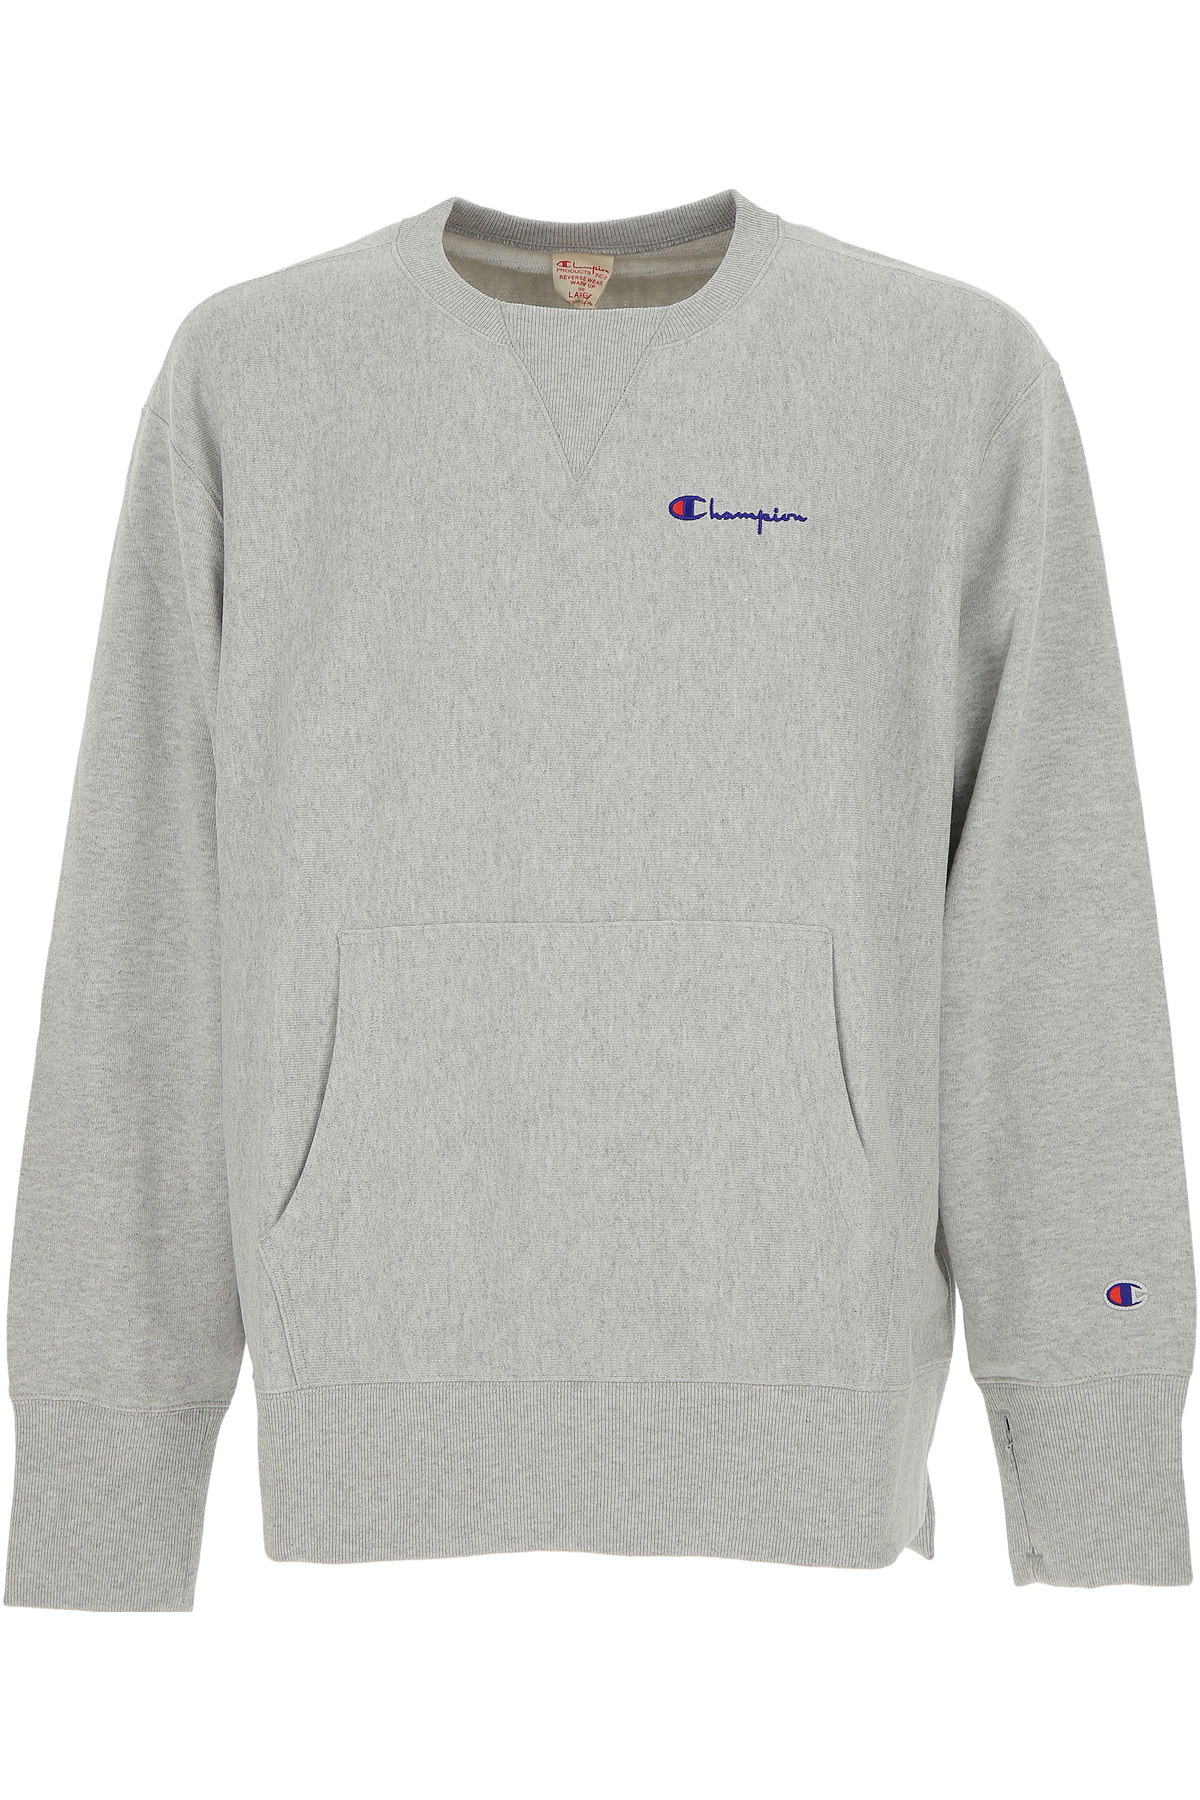 Champion Sweatshirt for Men, Grey, Cotton, 2017, L M S USA-454877